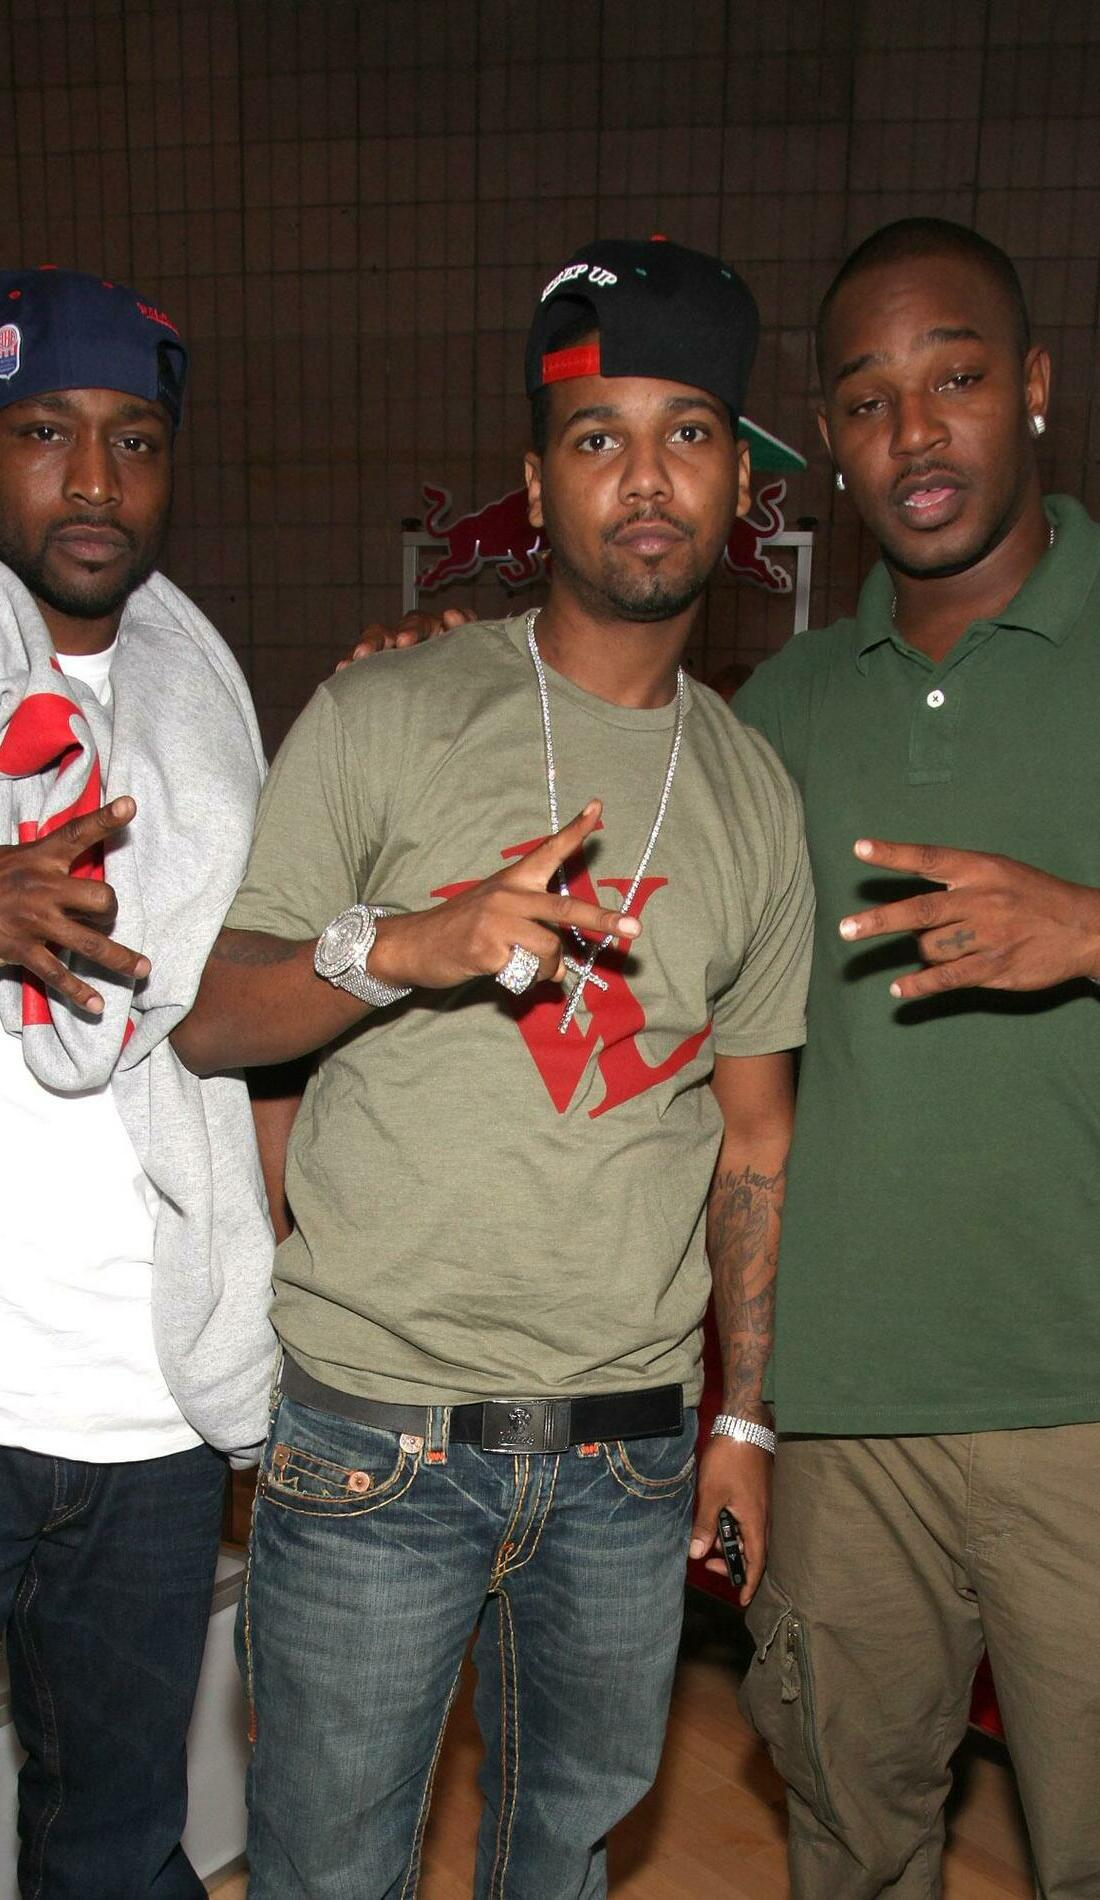 A The Diplomats live event